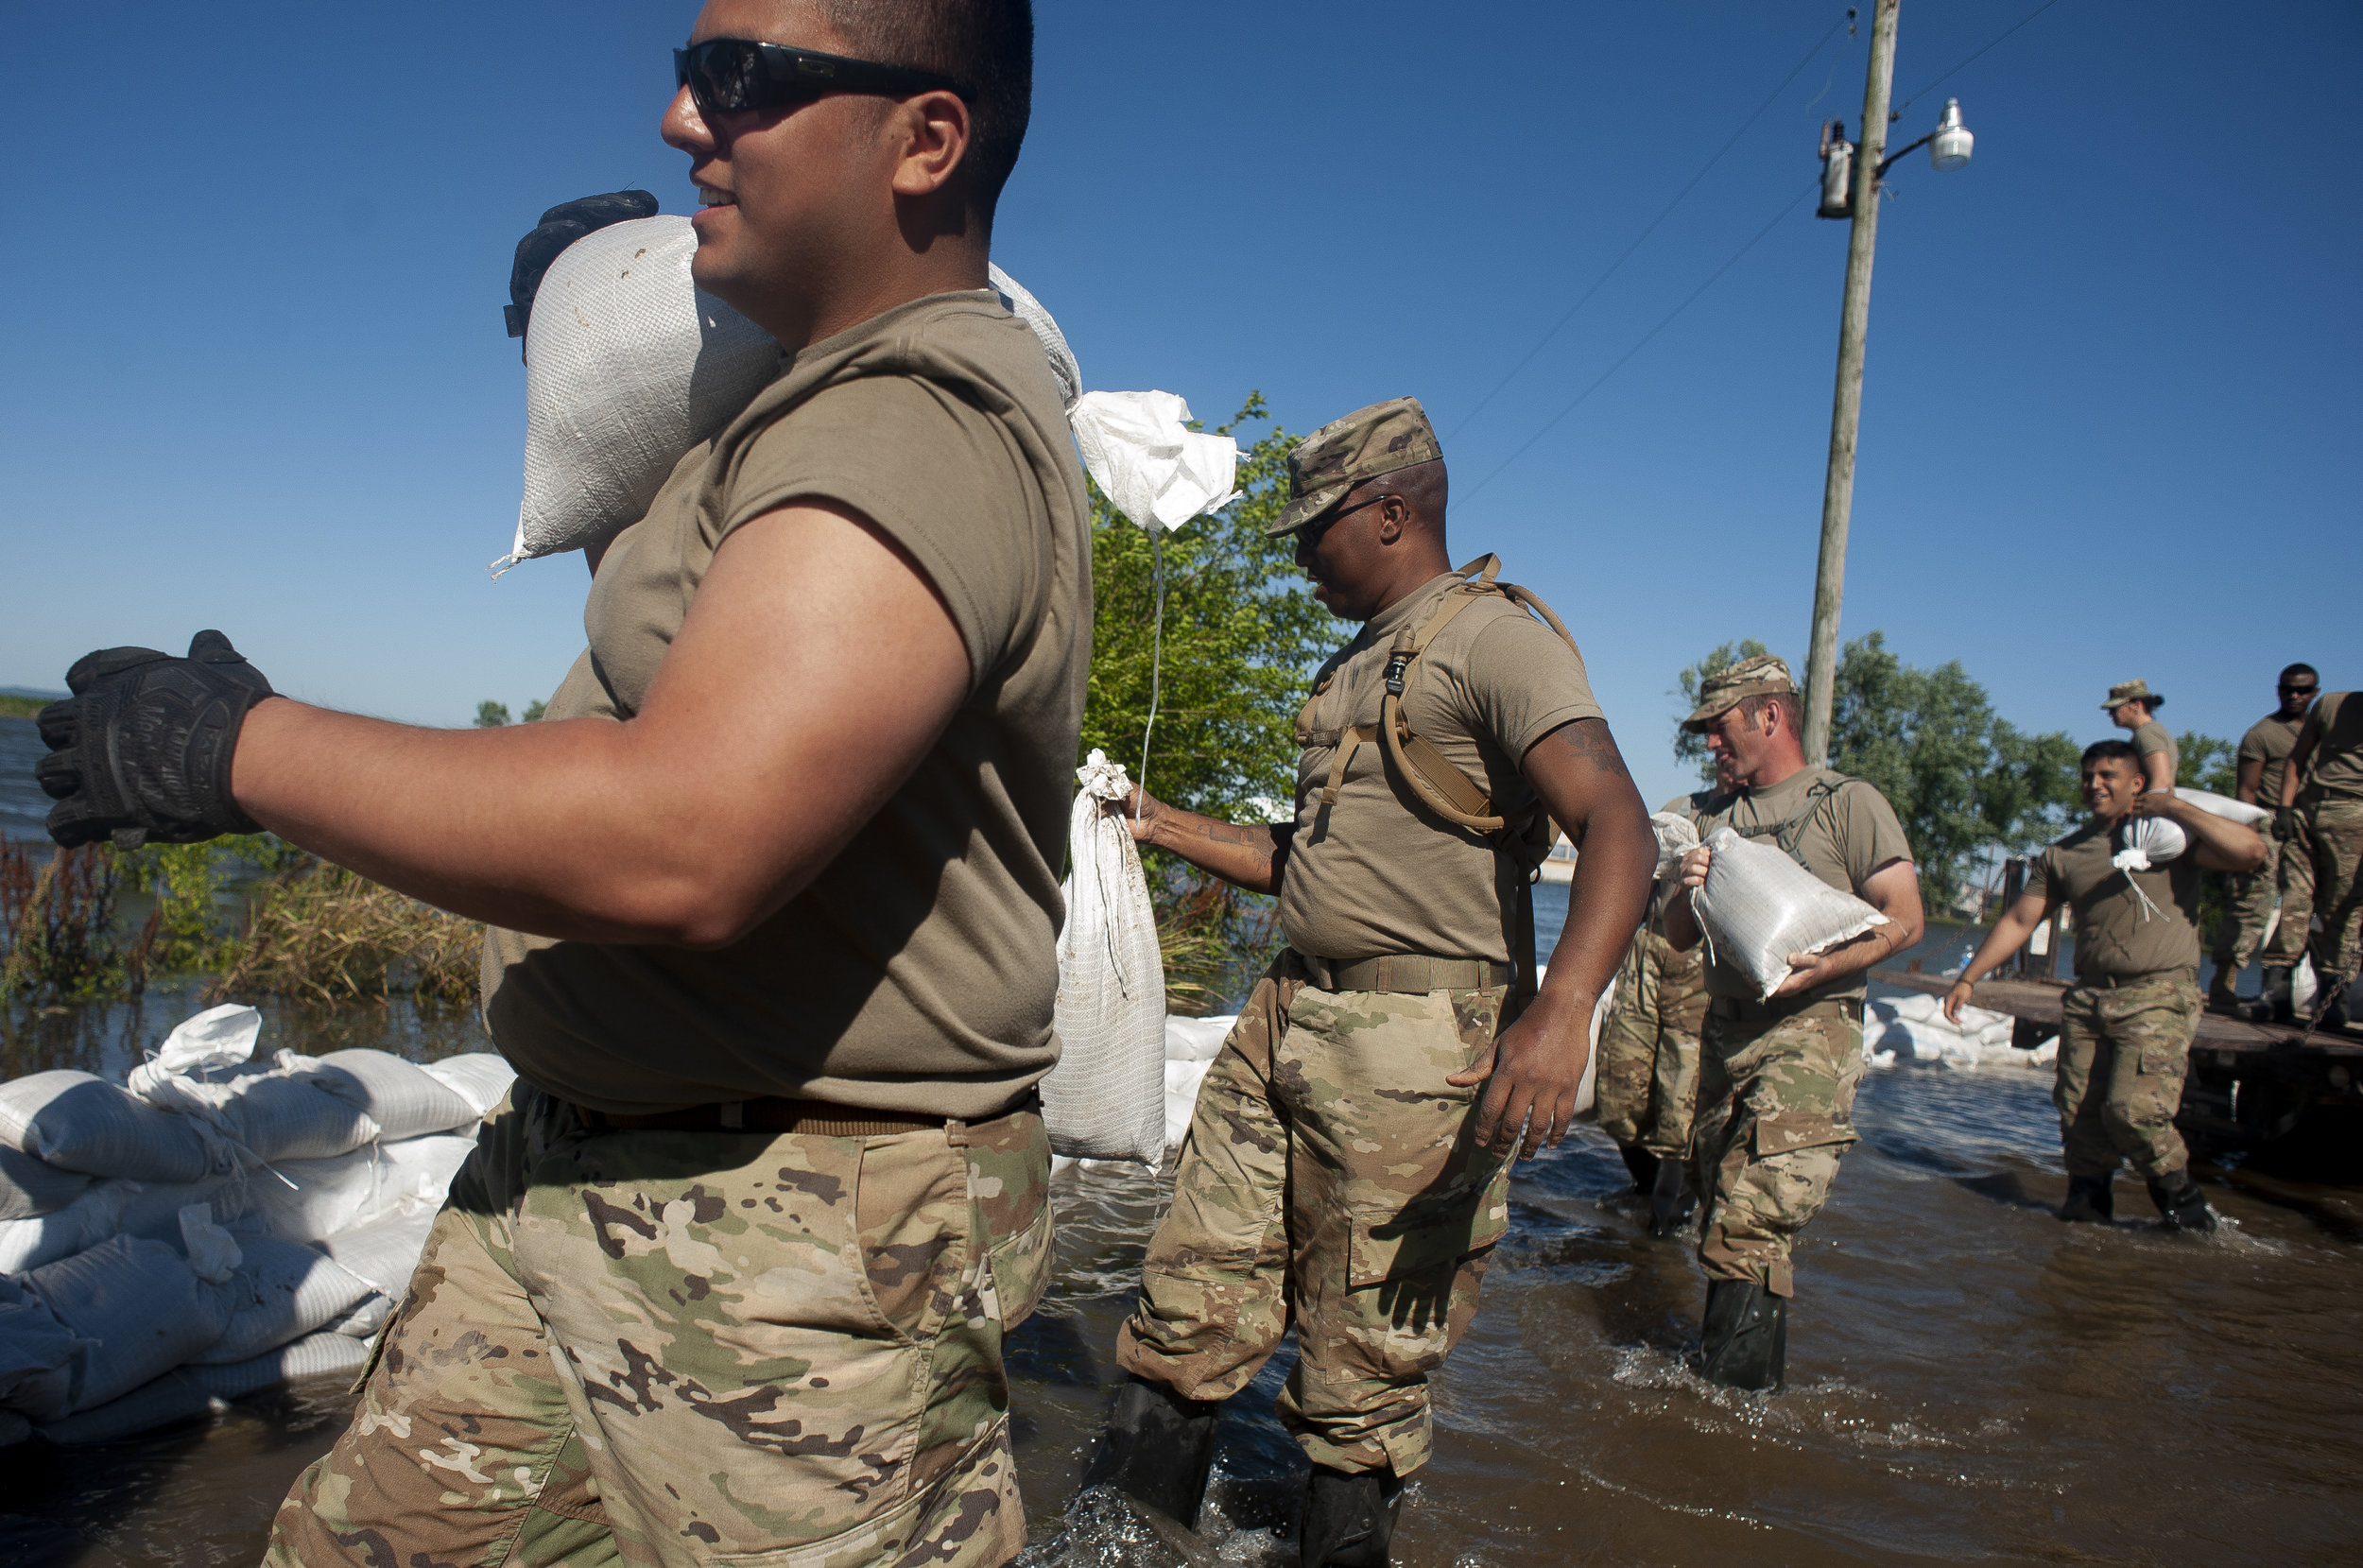 Illinois National Guard member Arturo Martinez, front, and other Guard members help build up sandbag barriers to hold back floodwaters Monday, June 10, 2019, along Brookwood Drive in East Cape Girardeau, Illinois. Jacob Wiegand | Southeast Missourian